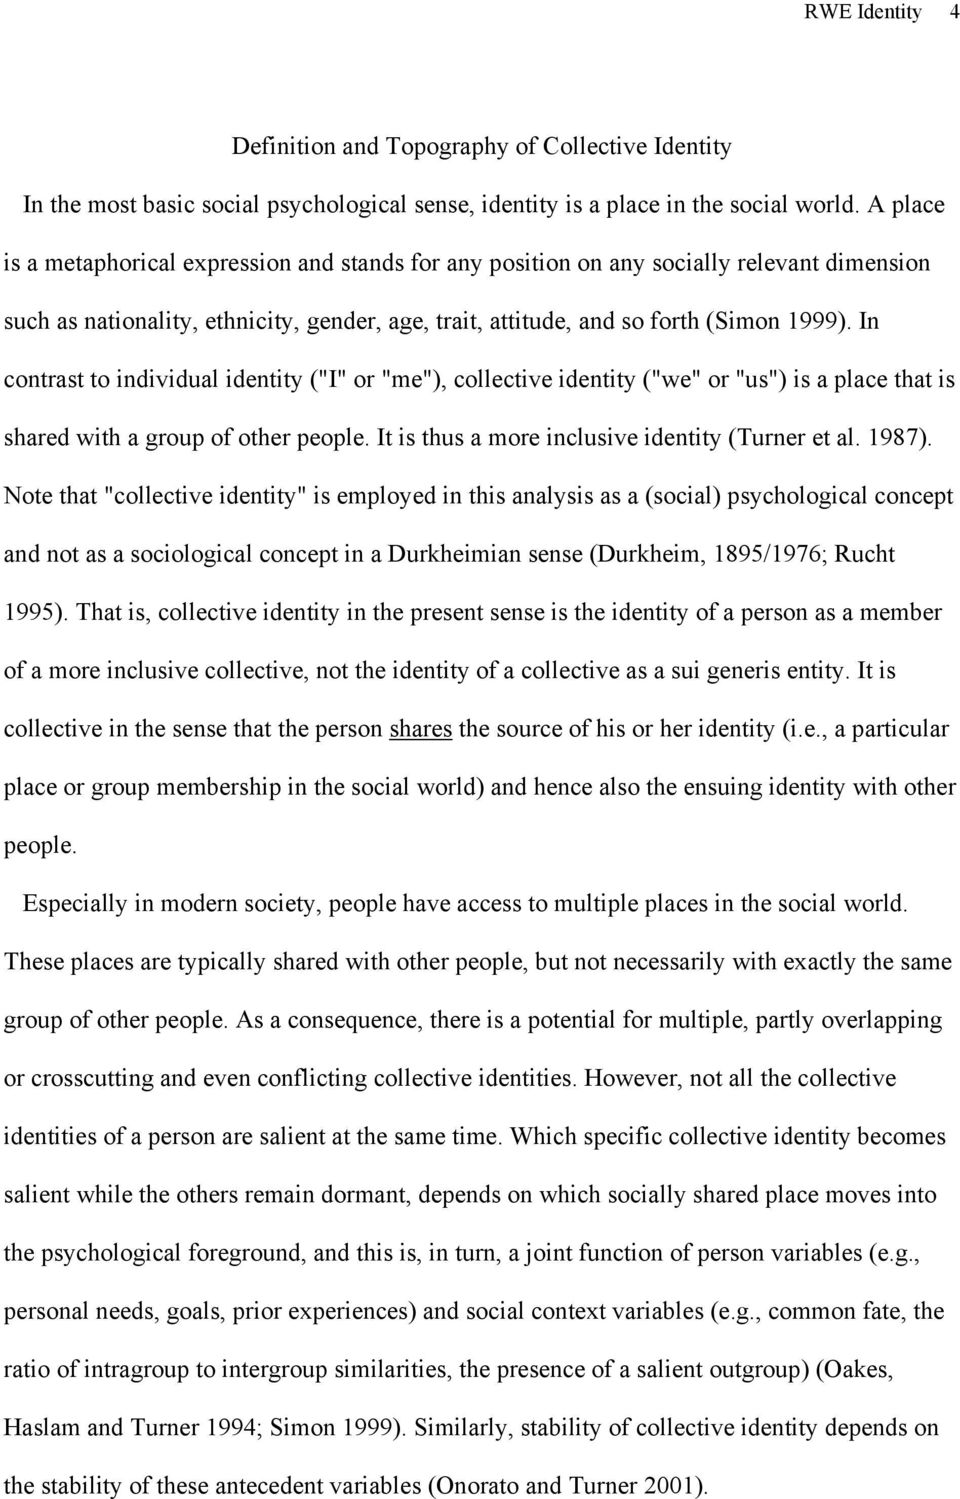 "In contrast to individual identity (""I"" or ""me""), collective identity (""we"" or ""us"") is a place that is shared with a group of other people. It is thus a more inclusive identity (Turner et al. 1987)."